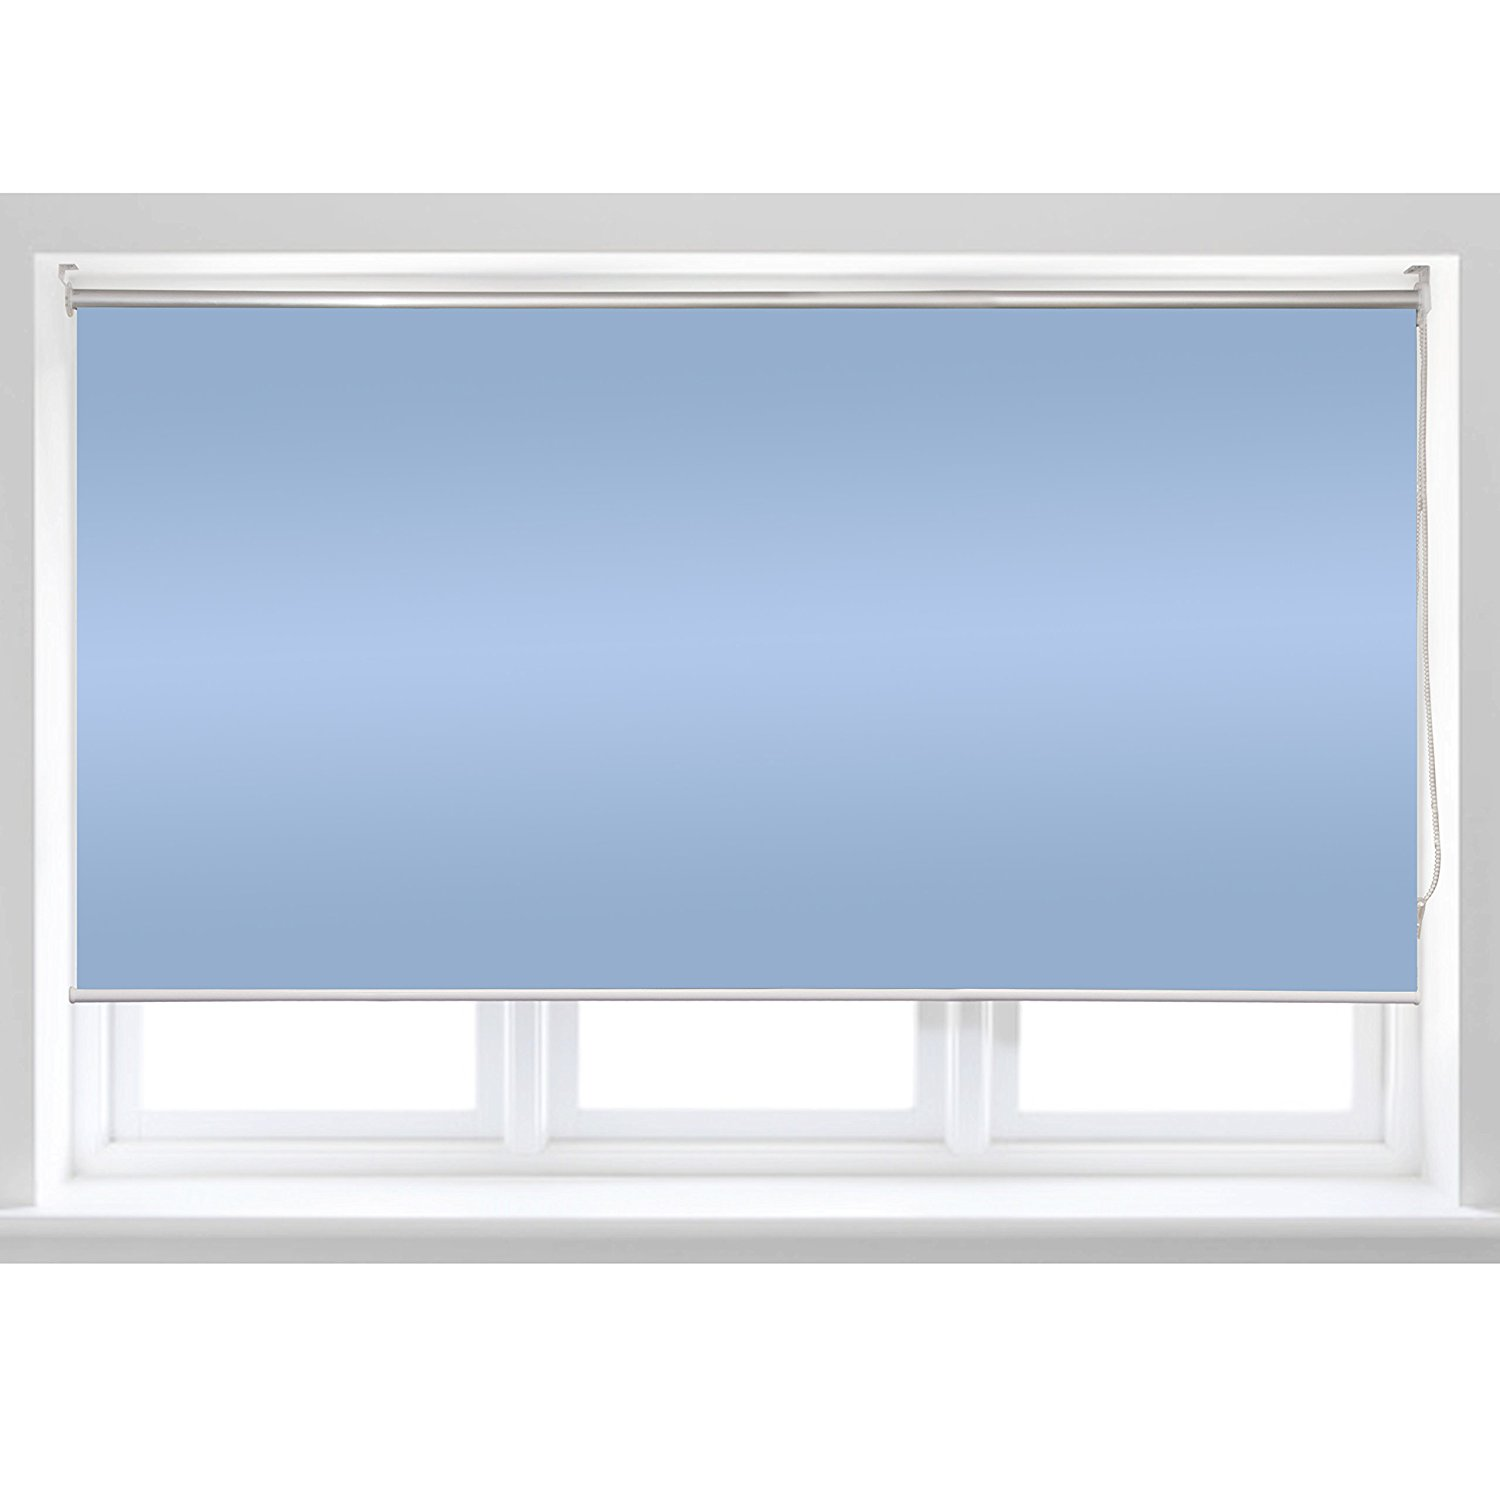 Roll Up Shade Windscreen Sunshade Blinds 96 X 72 Inches, Blue